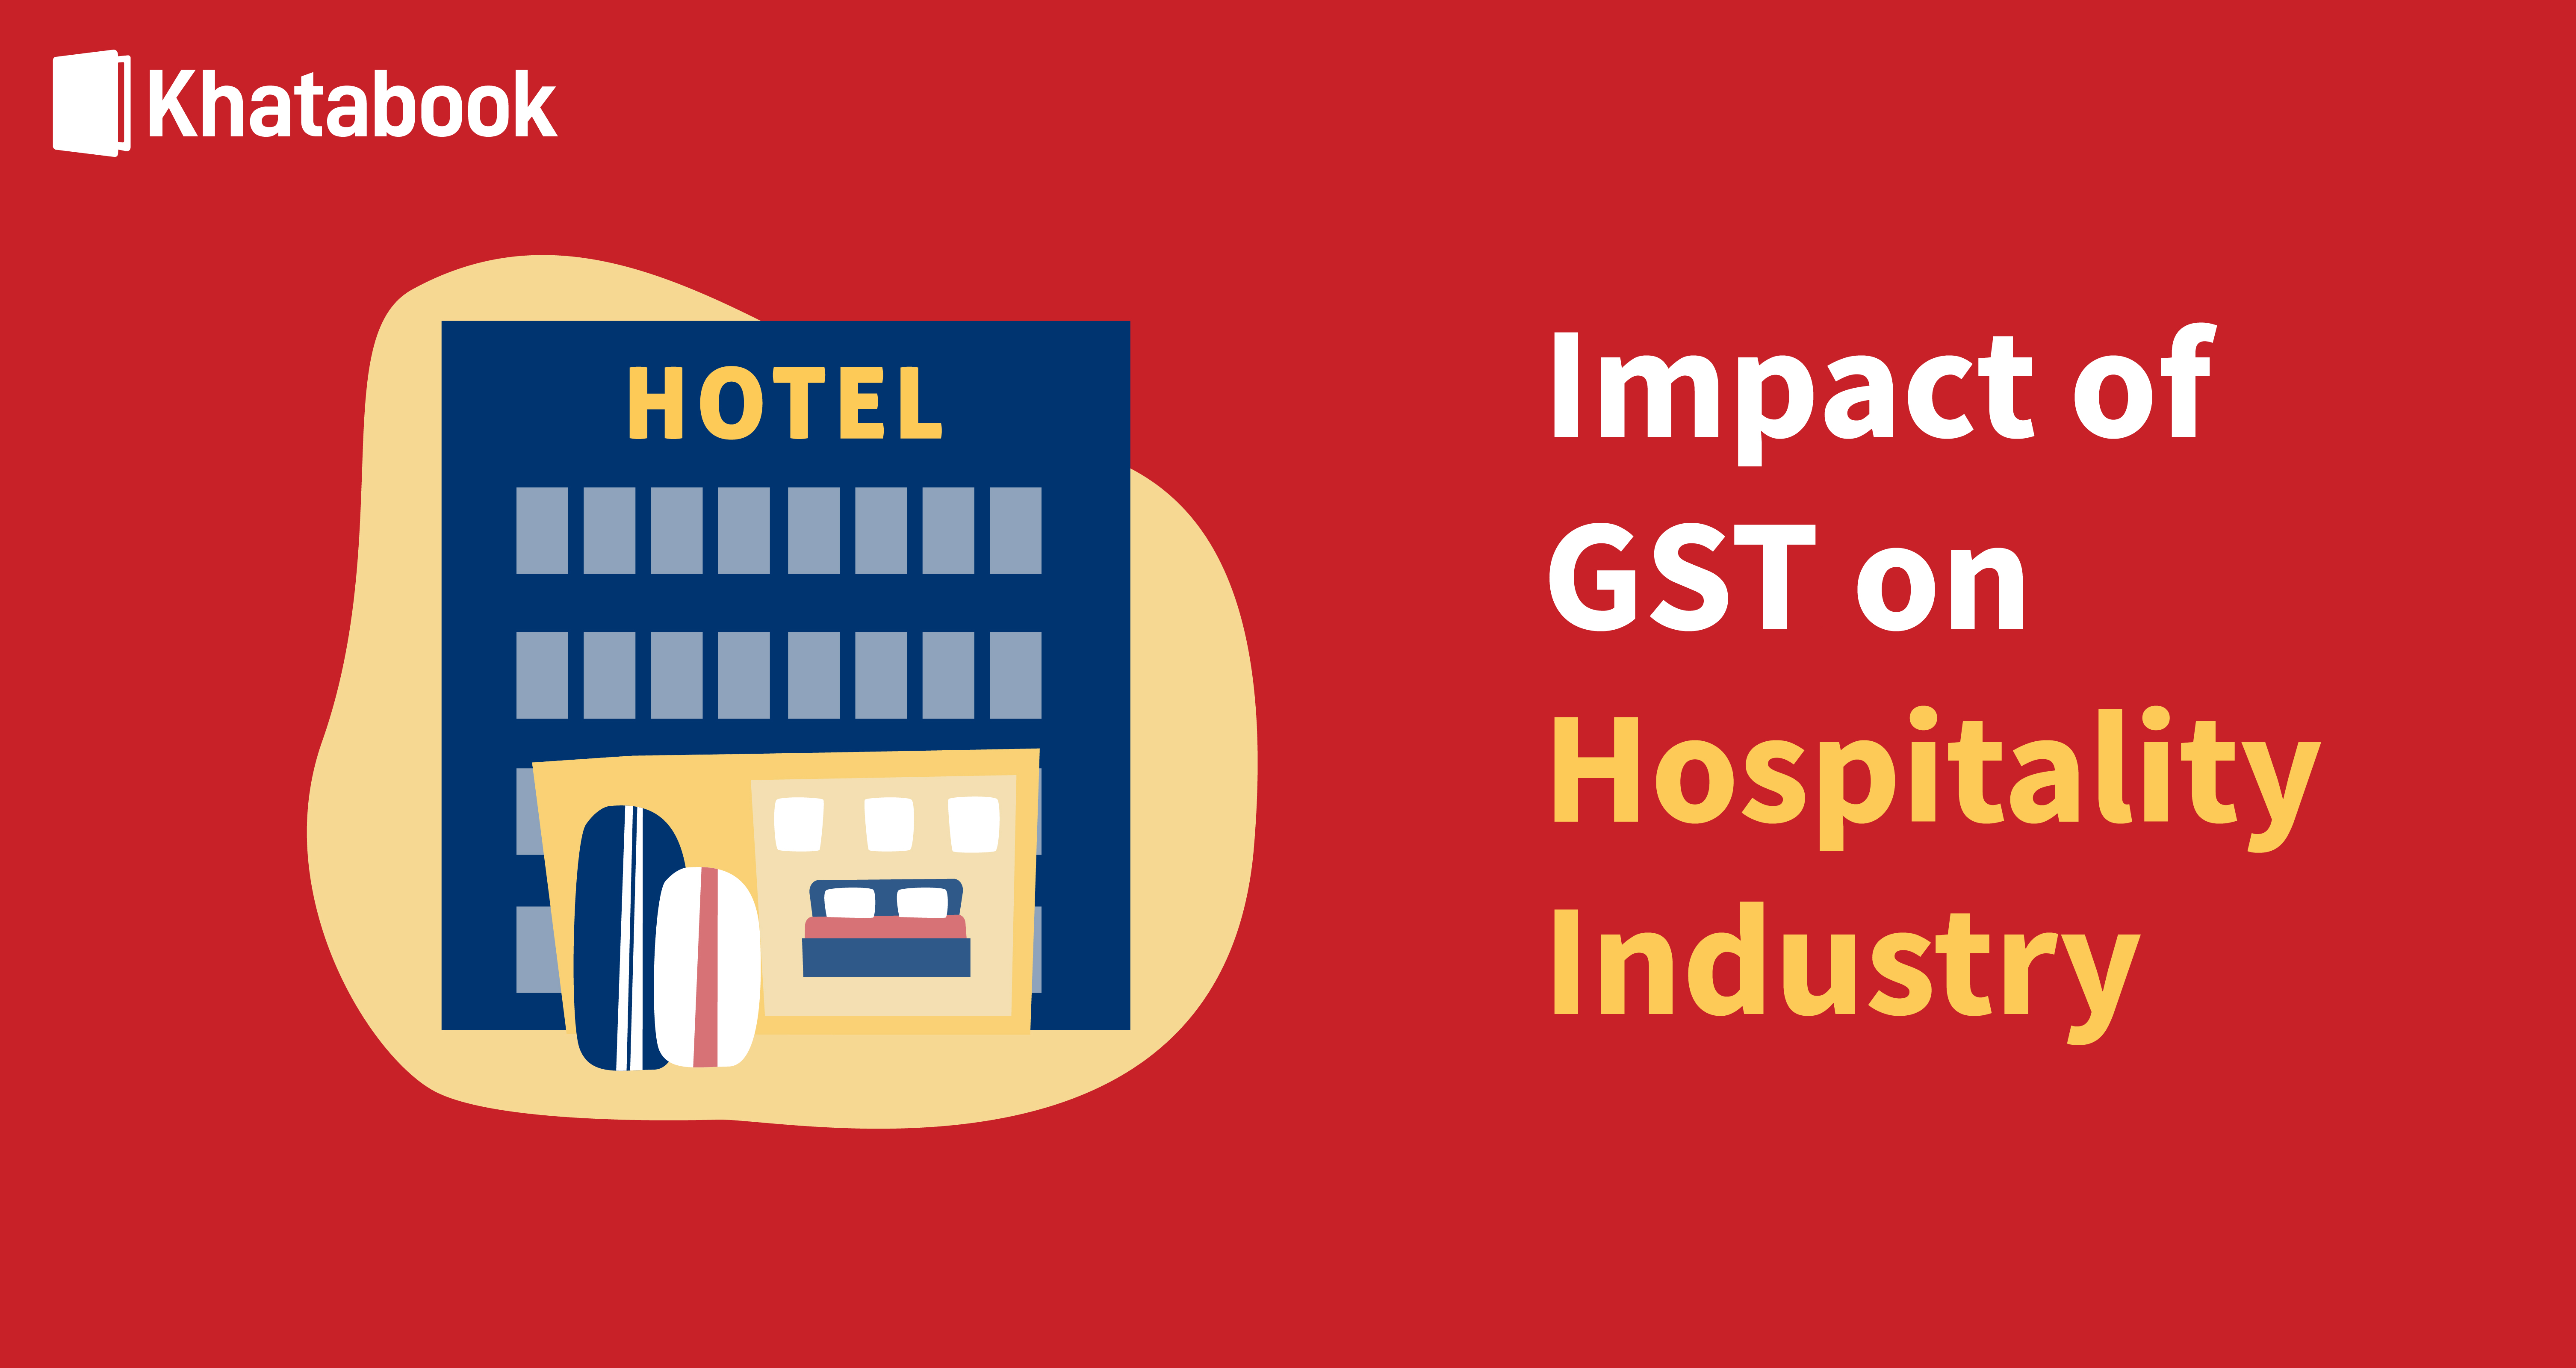 How did GST Impact The Hospitality Industry?